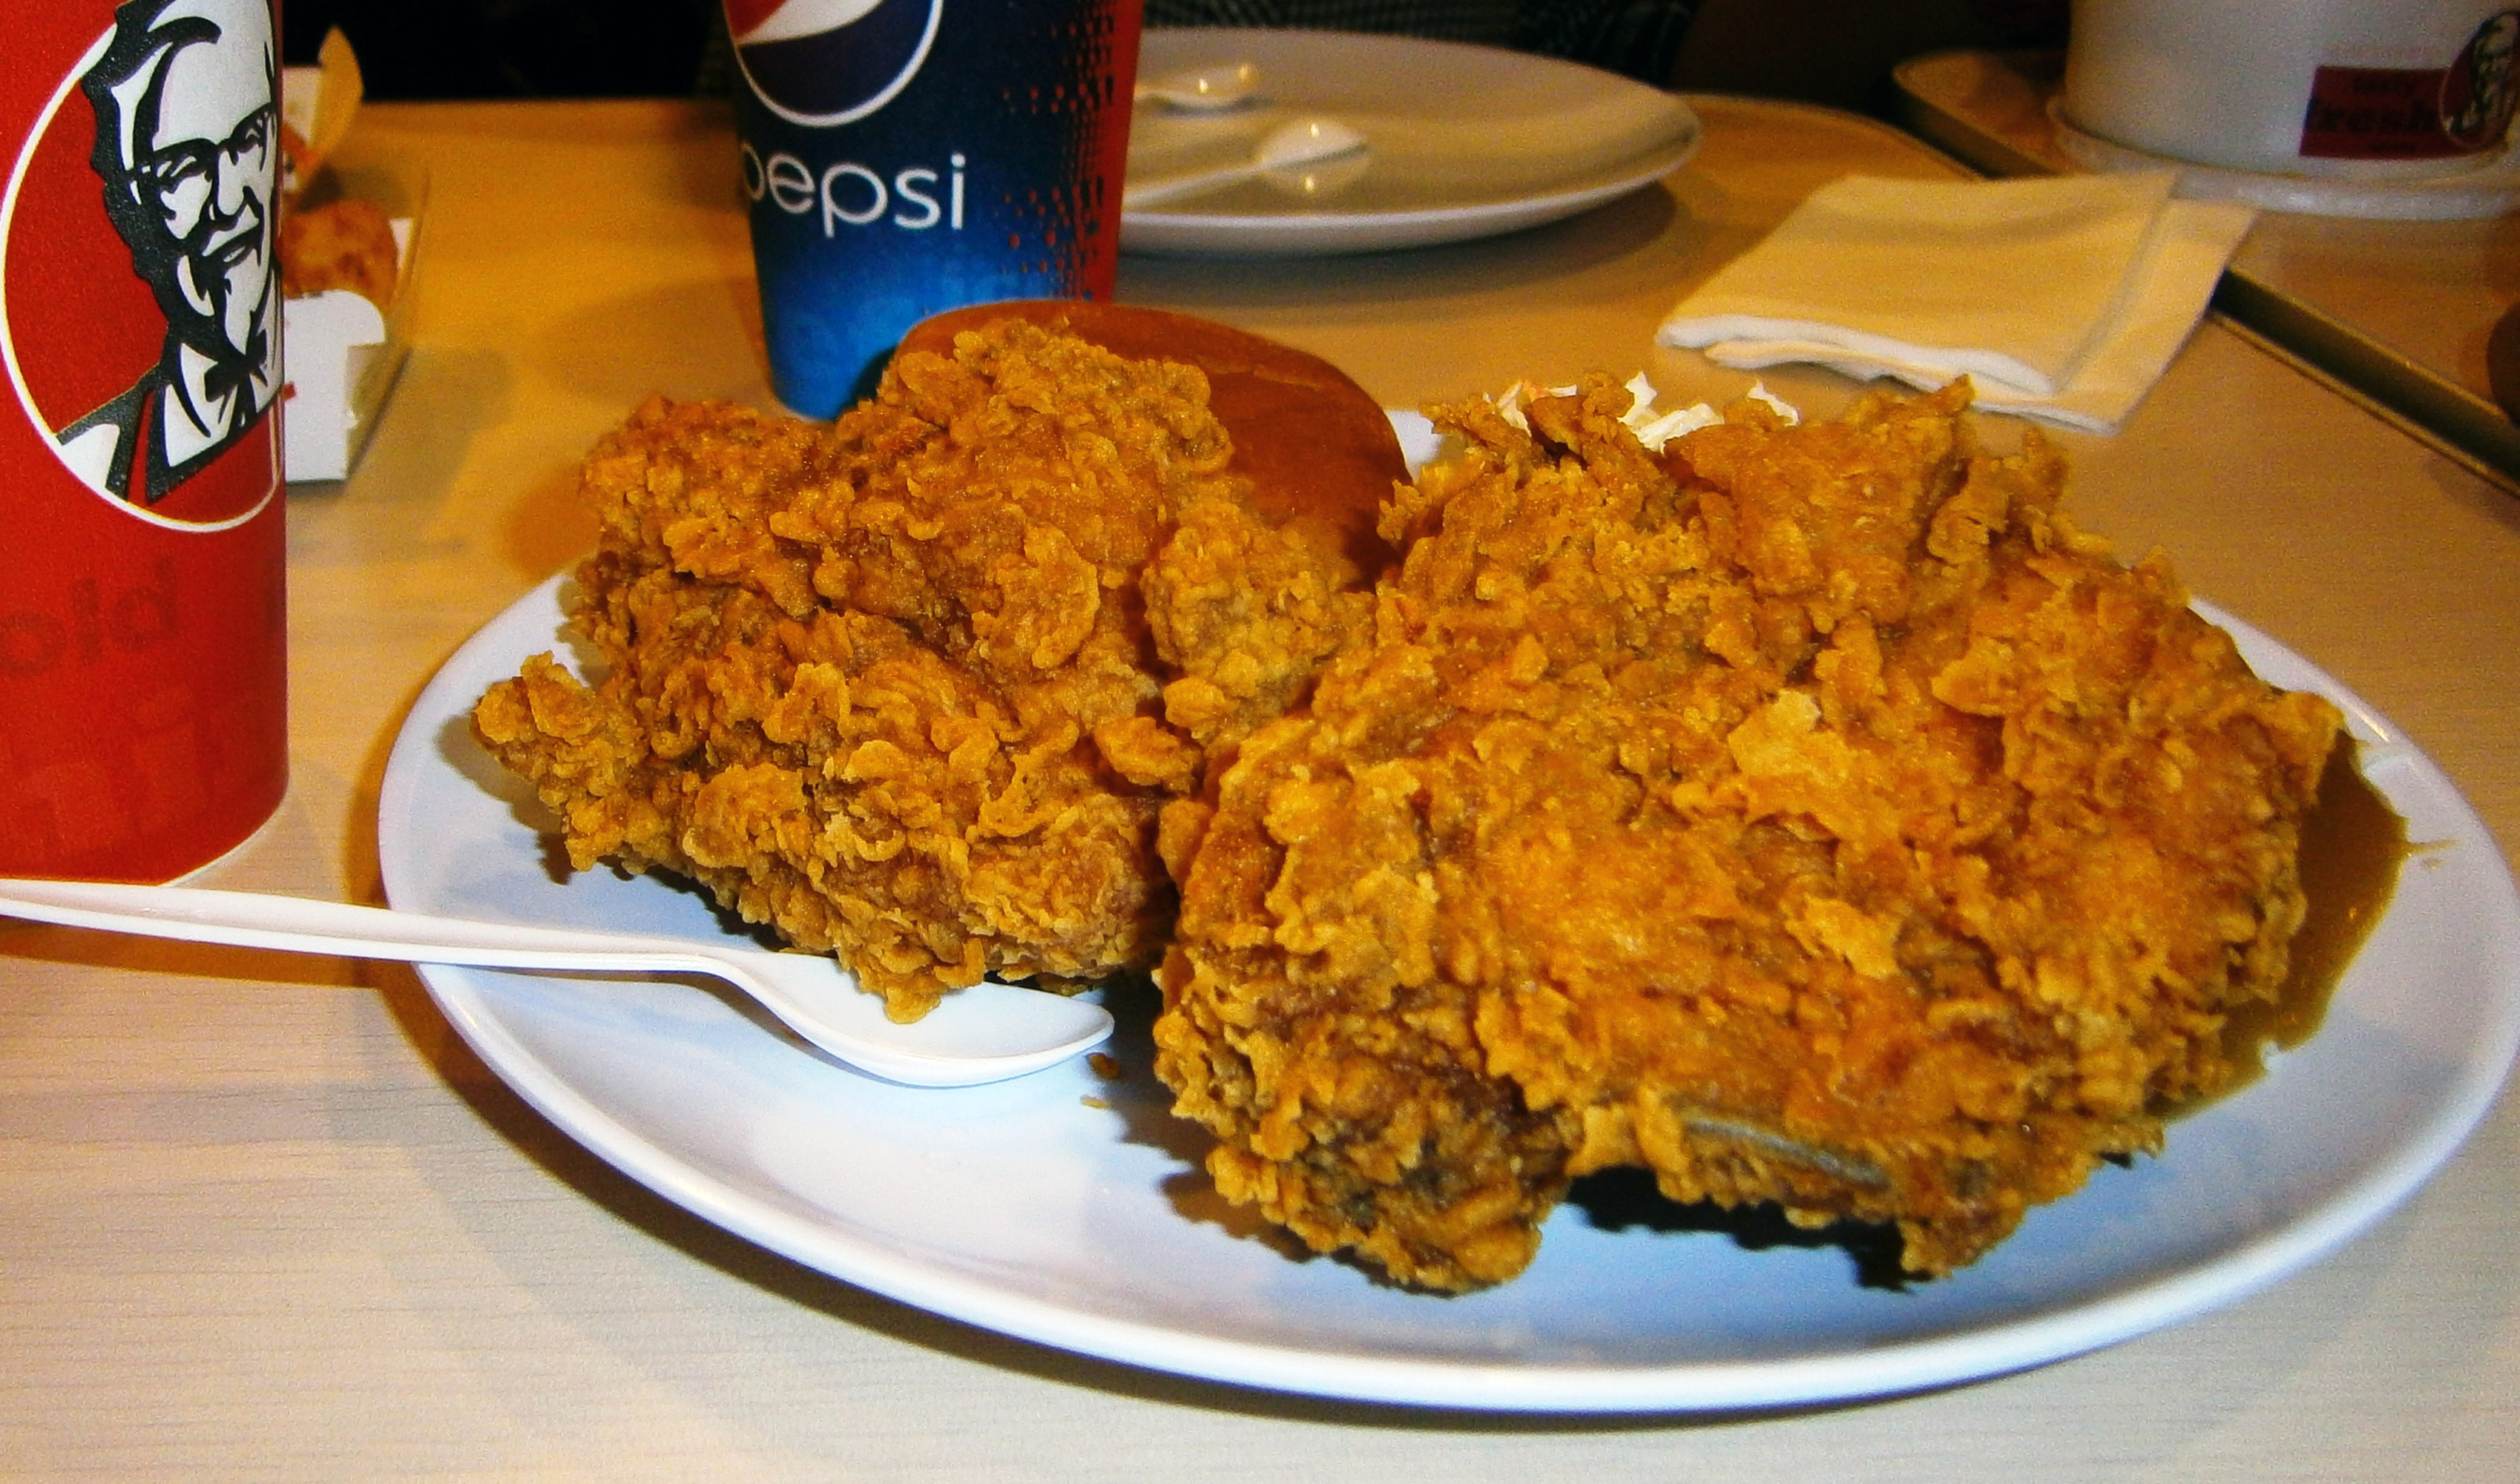 File:KFC (Malaysia), Hot Wings fried chicken jpg - Wikimedia Commons